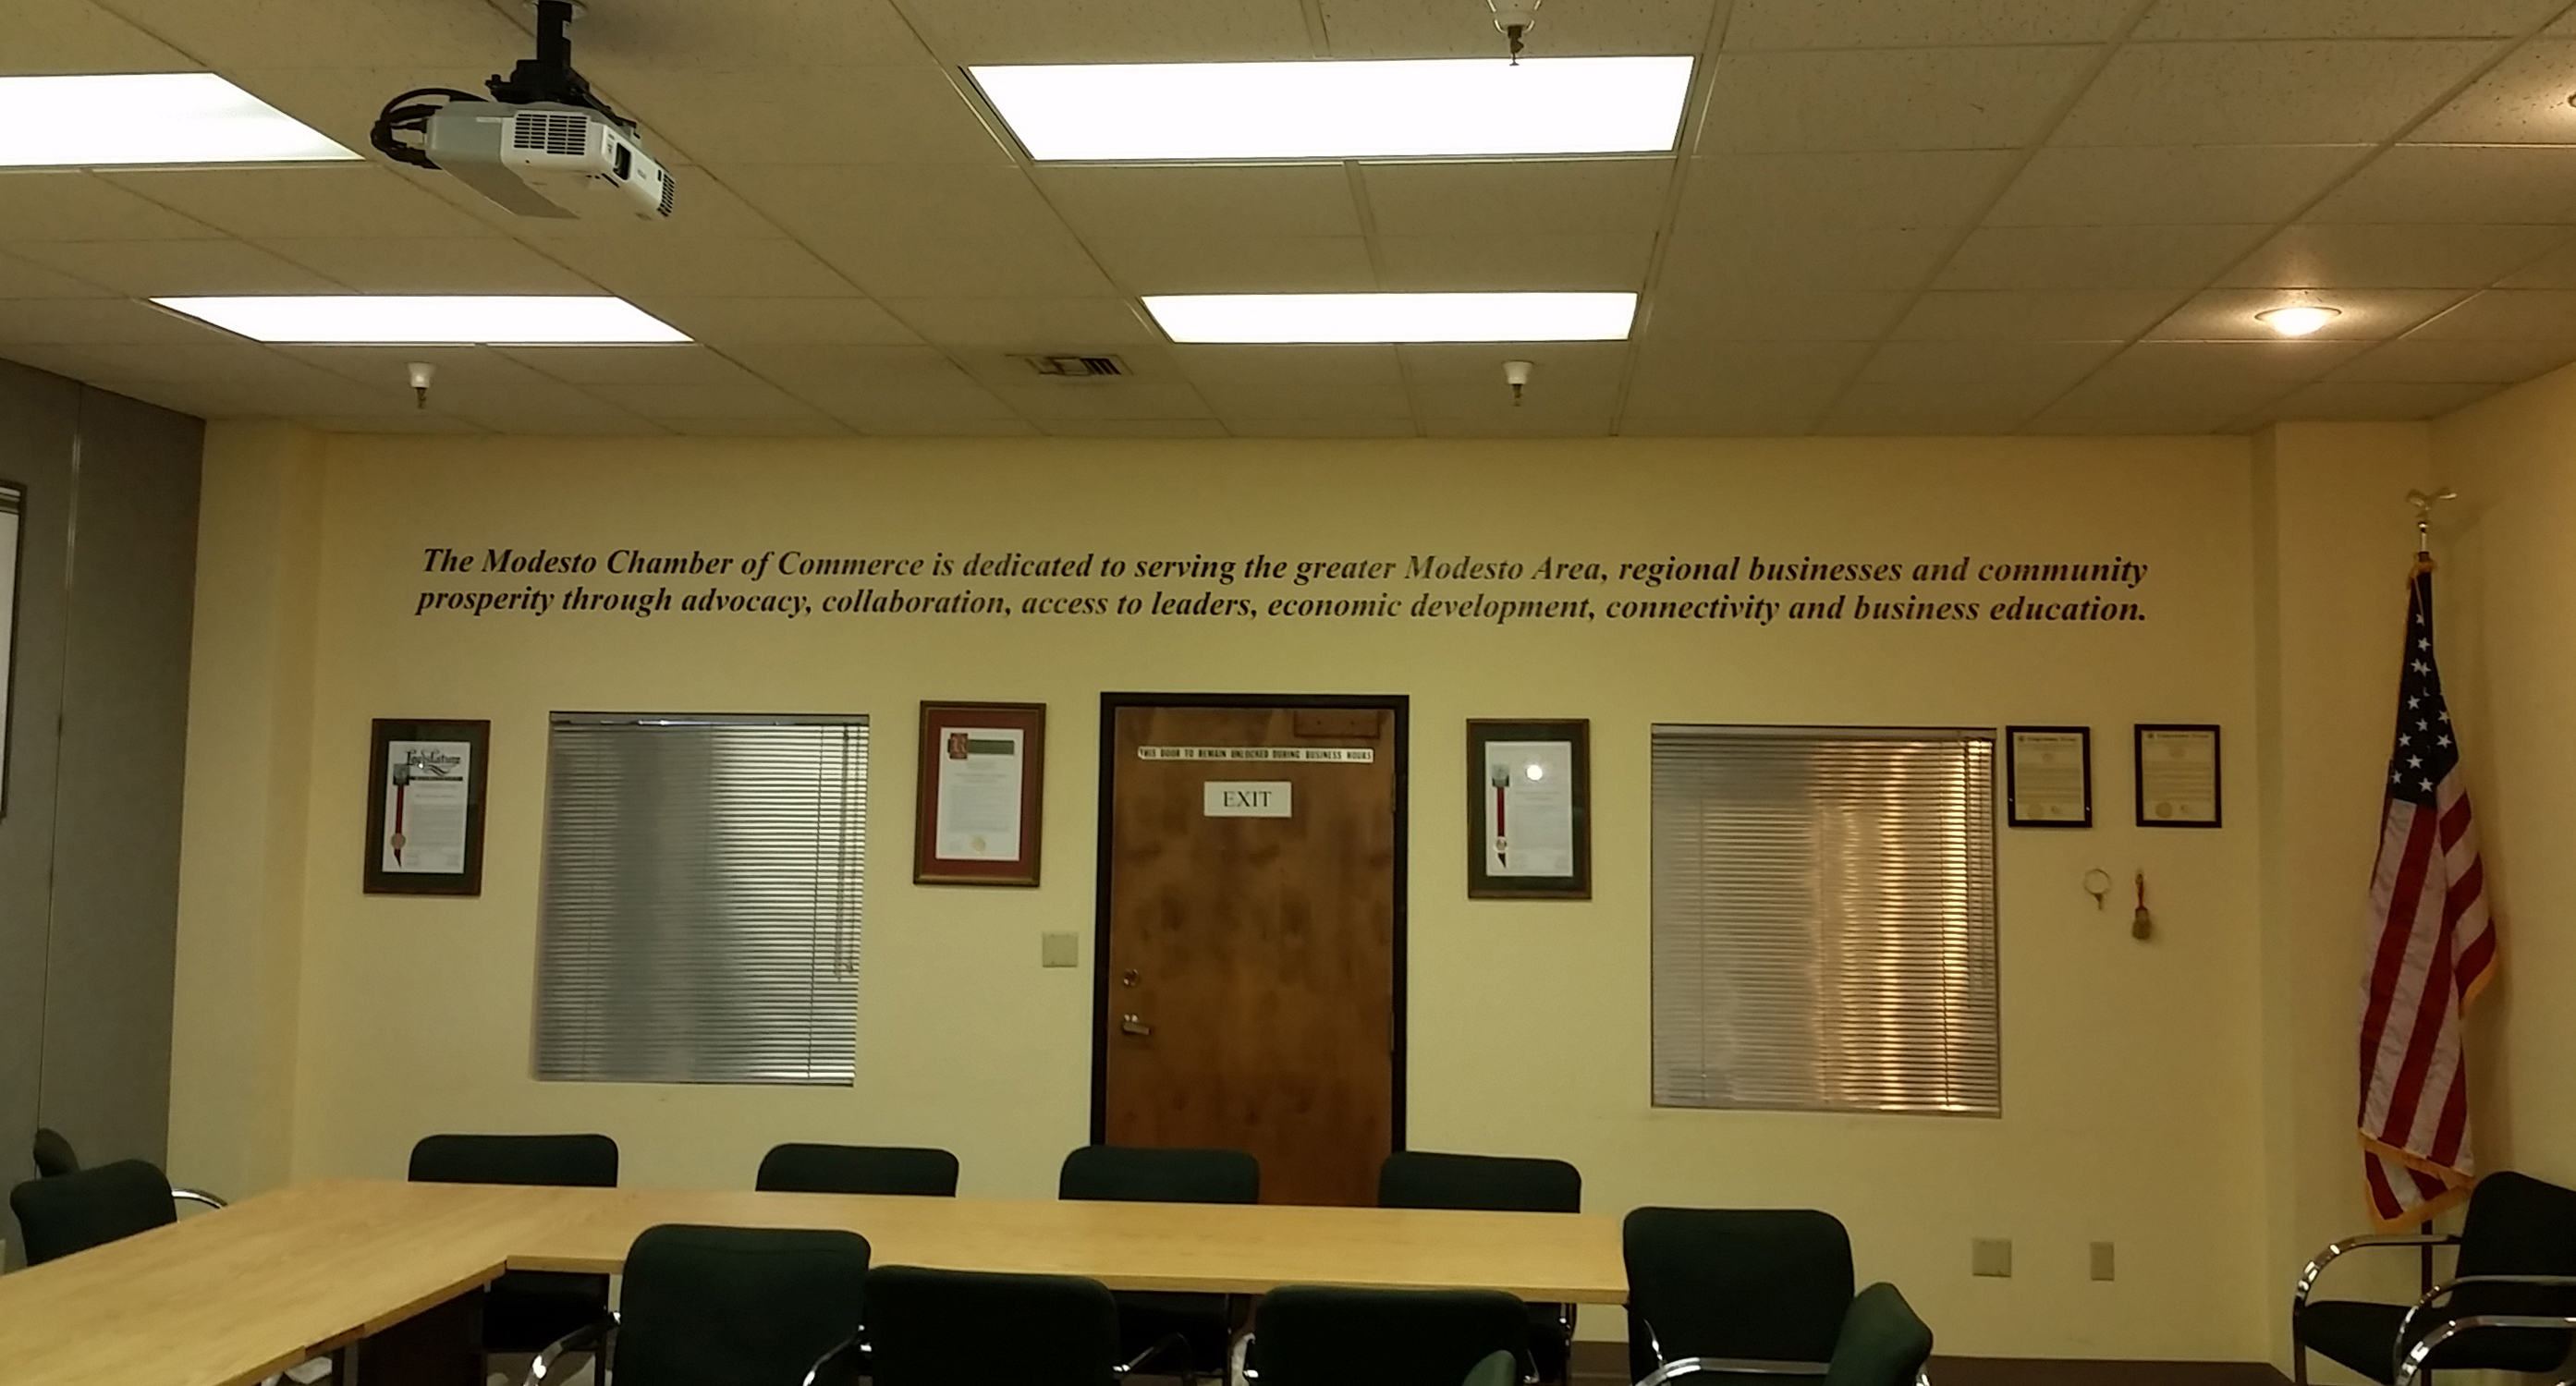 Custom Interior Office Signage for Central Valley Organizations in